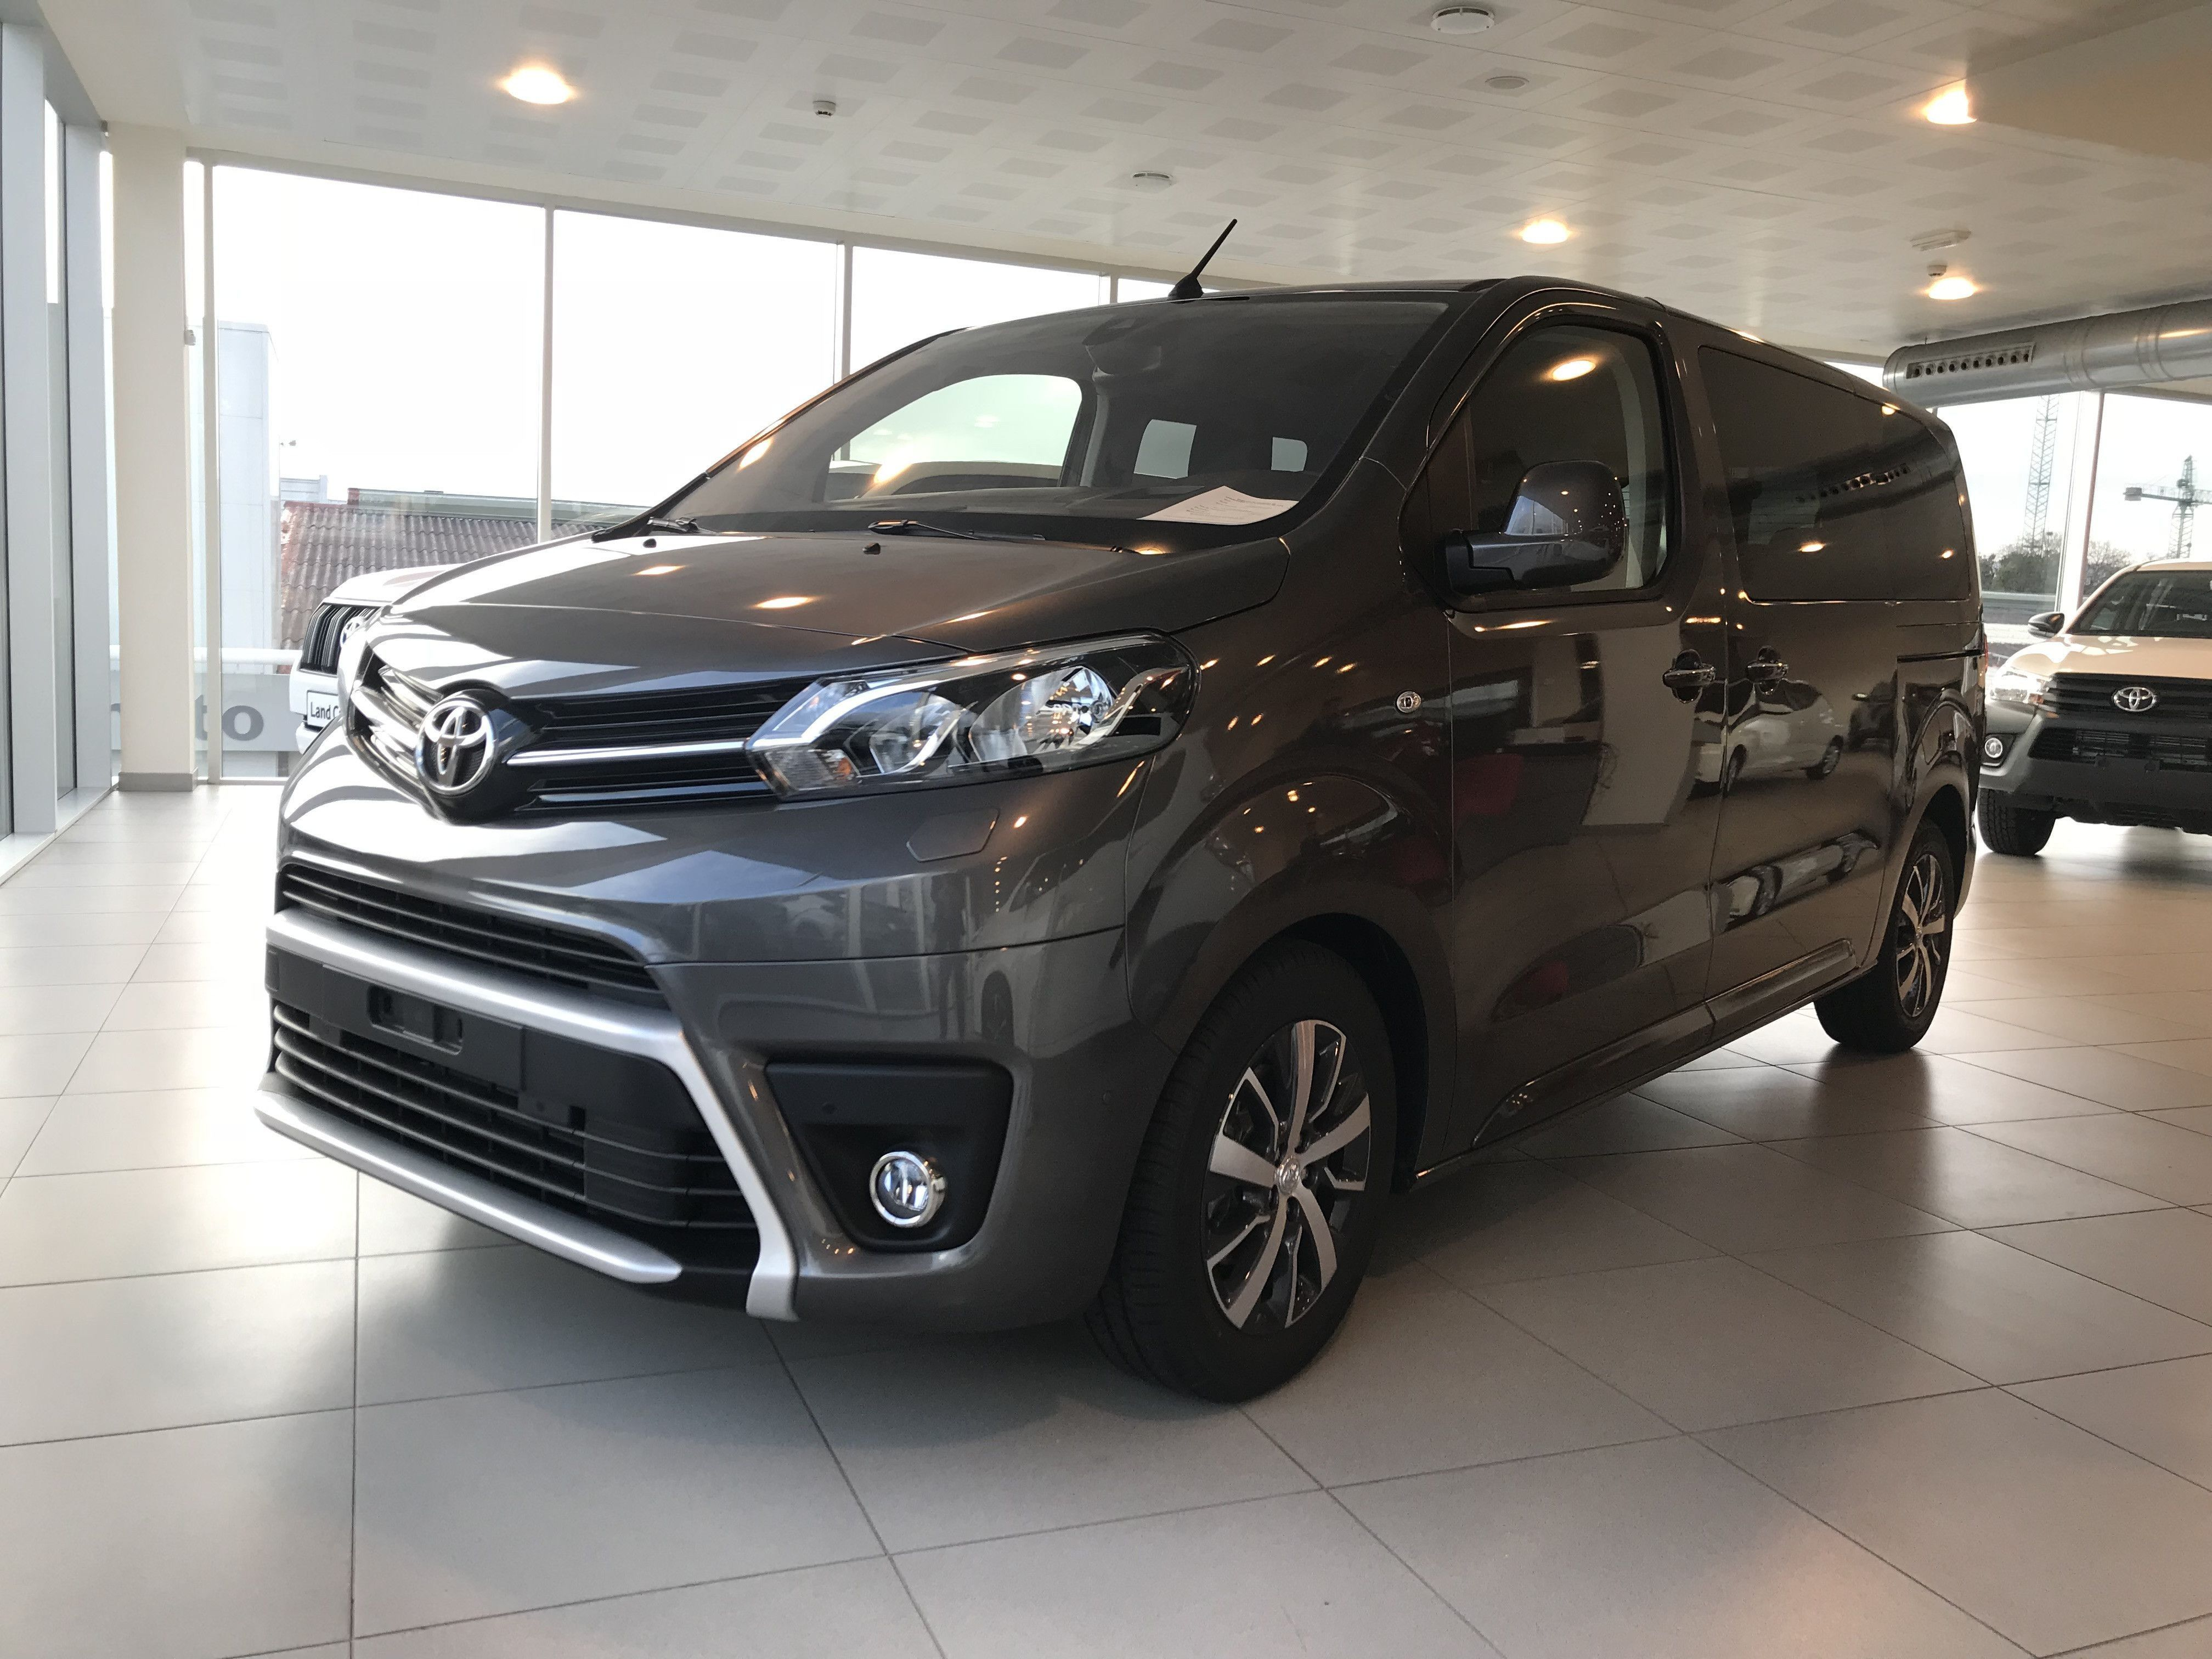 Toyota Avanza 2019 Picture, Release date, and Review